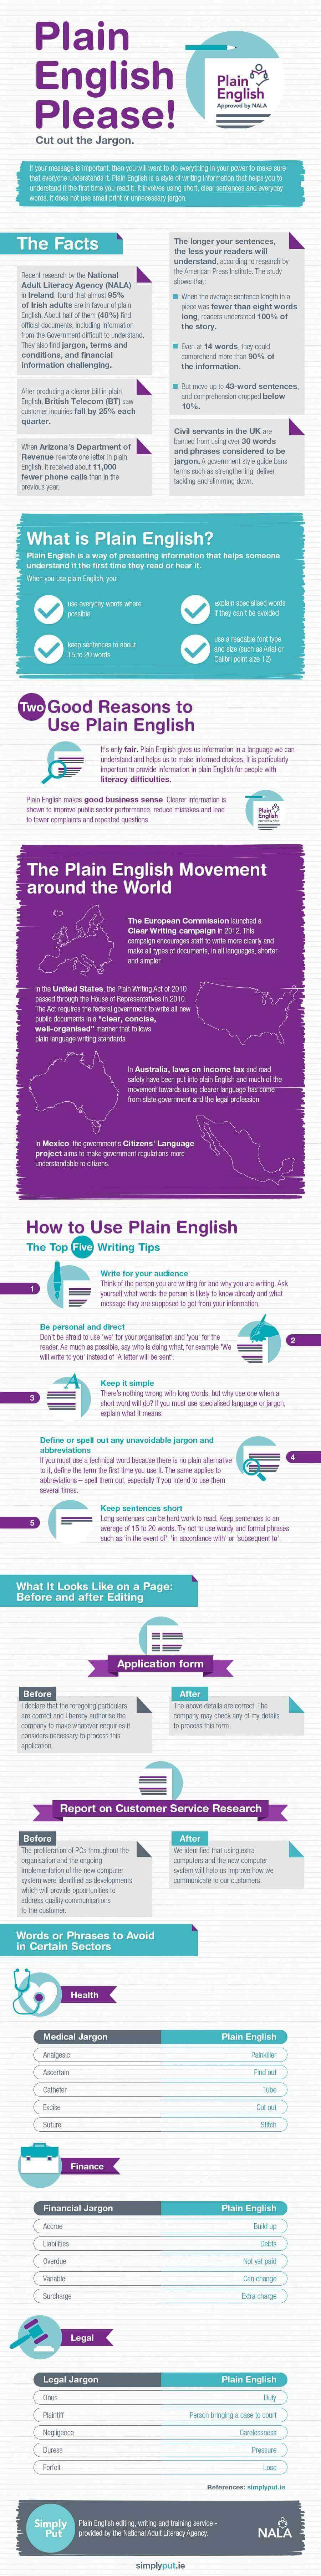 Plain English cuts out the jargon and enables people to understand information clearly. It is an important approach for those people dealing with members of the public – the Government, doctors, lawyers and many more professionals. In this infographic, find out about the plain English movement around the world as well as about the many benefits of using plain English.